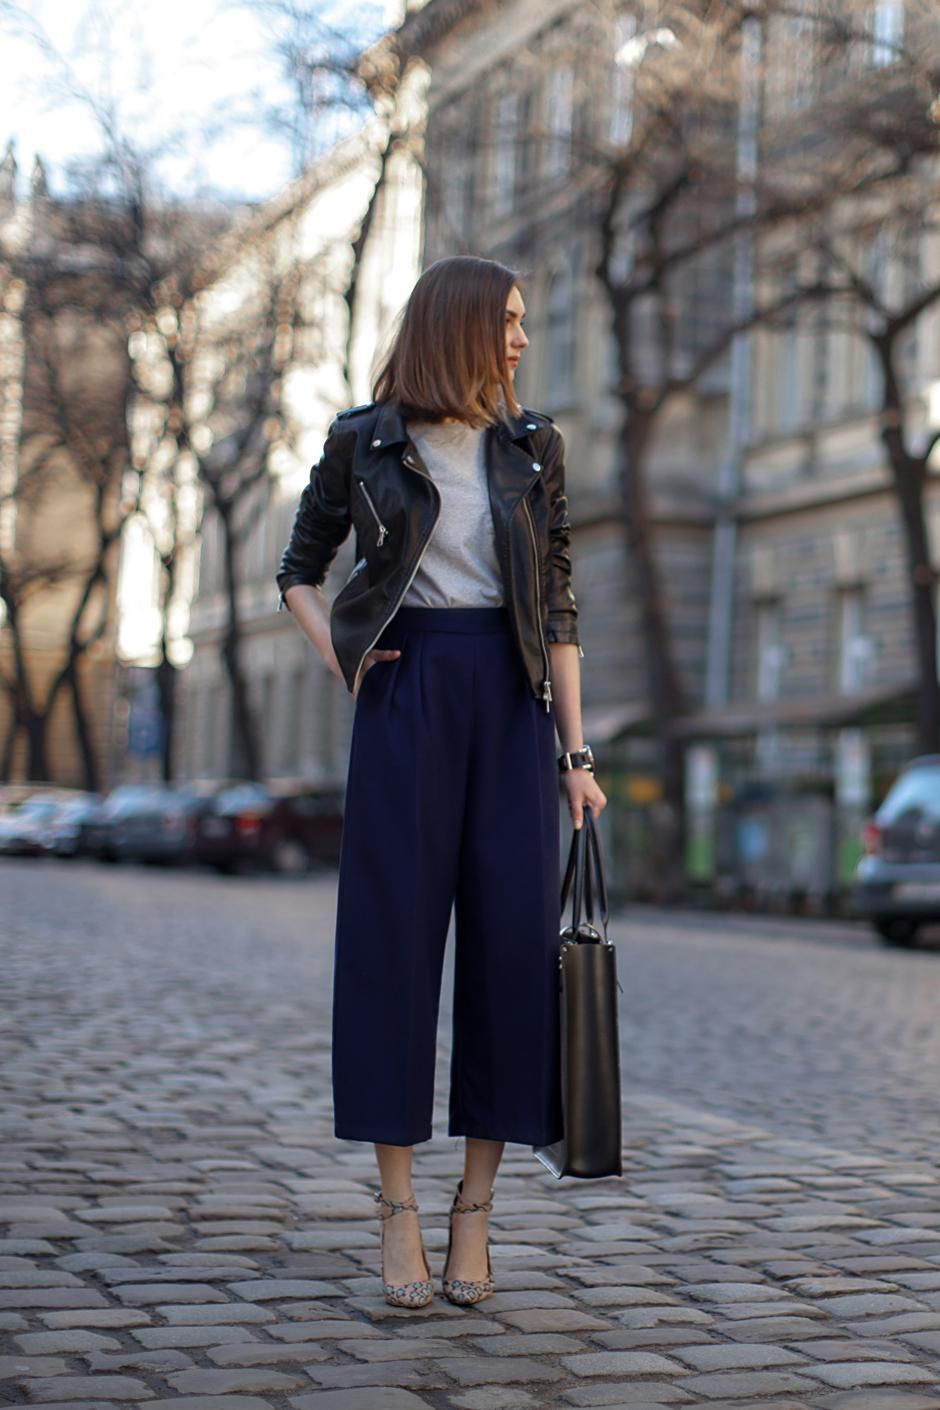 d08e8e531cd 20 Cute Spring Date Outfit Ideas - black leather jacket + navy blue, cropped  wide leg pants worn with pointy toe ankle strap heels